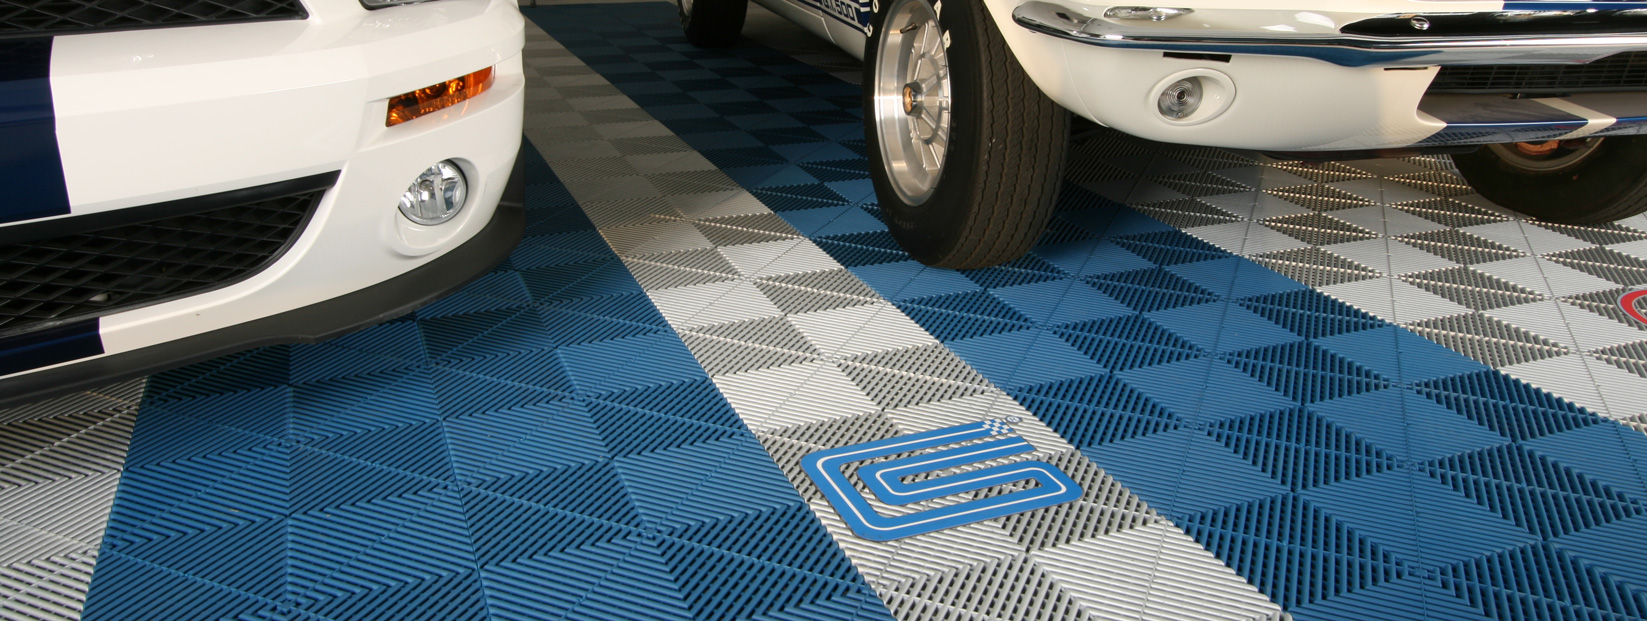 Greenville Garage Flooring